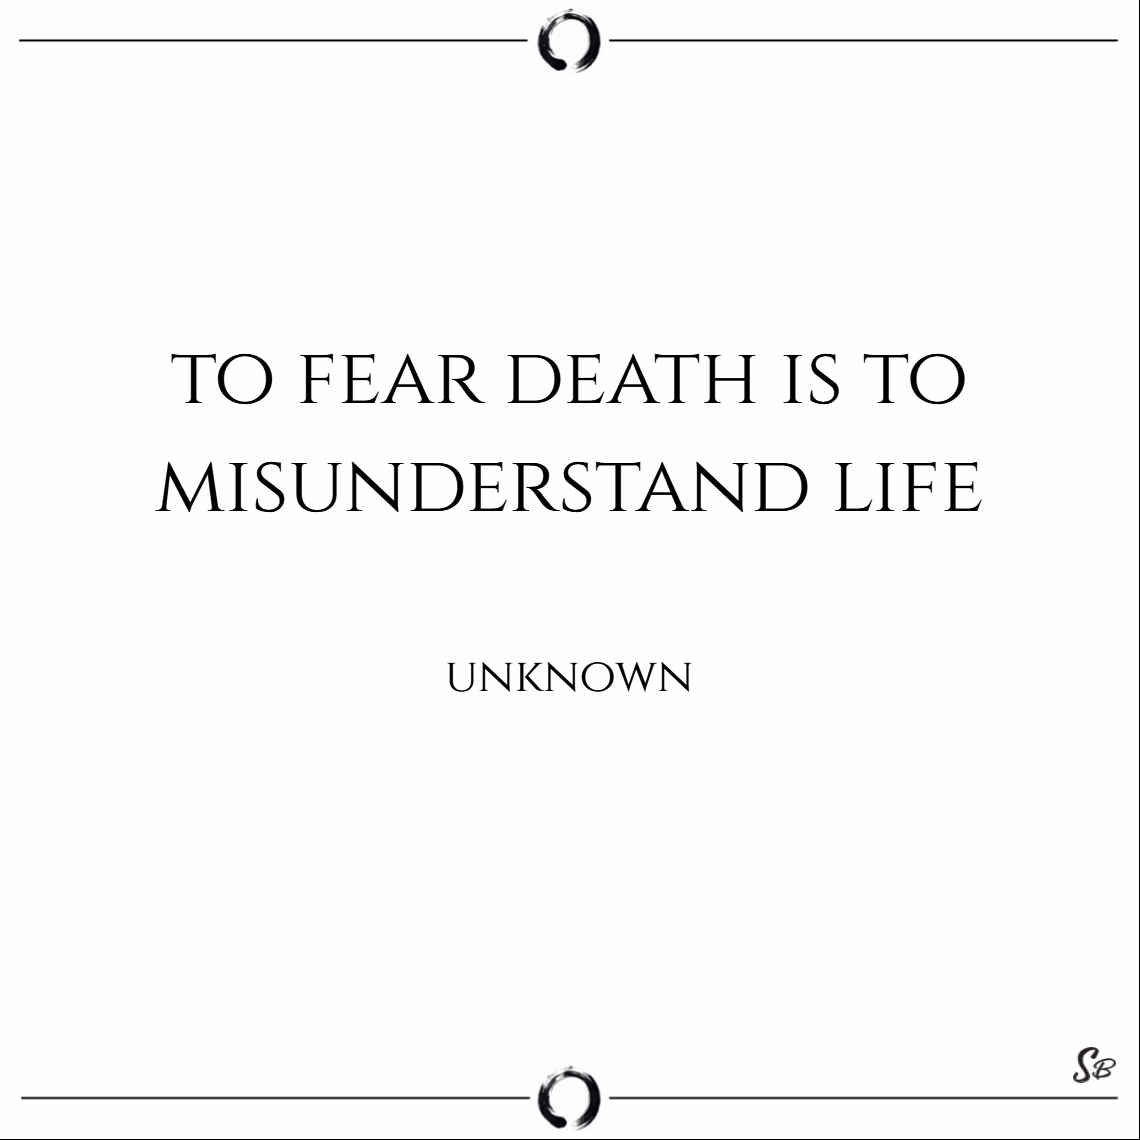 To fear death is to misunderstand life. – unknown